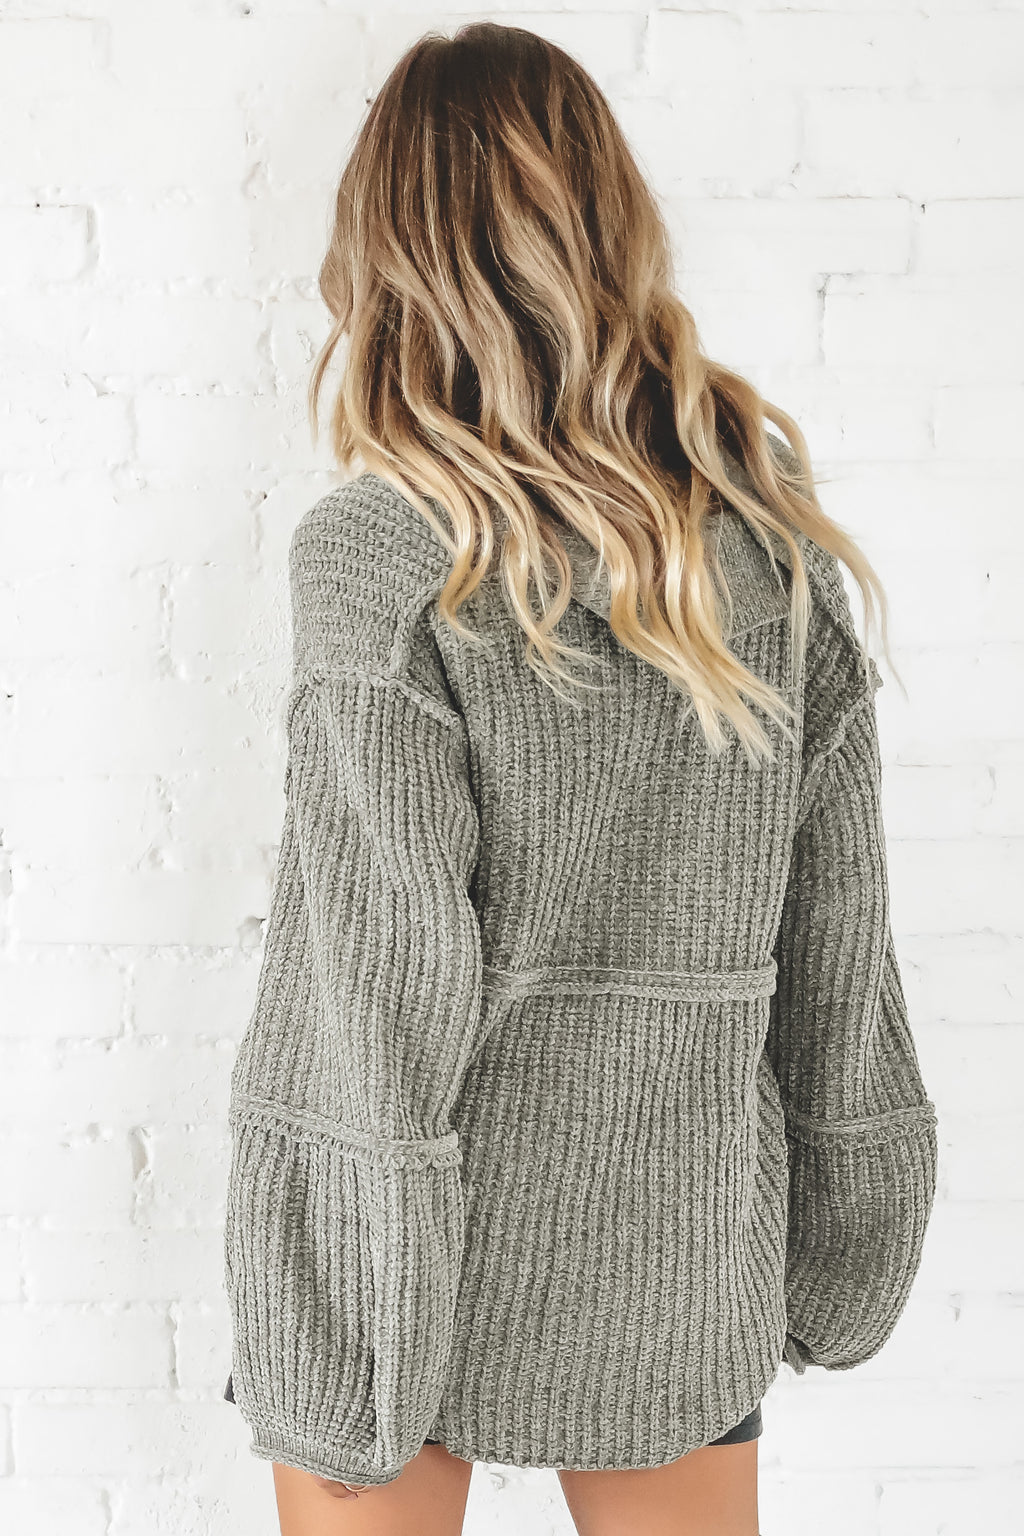 On Your Side Pistachio Chenille Sweater